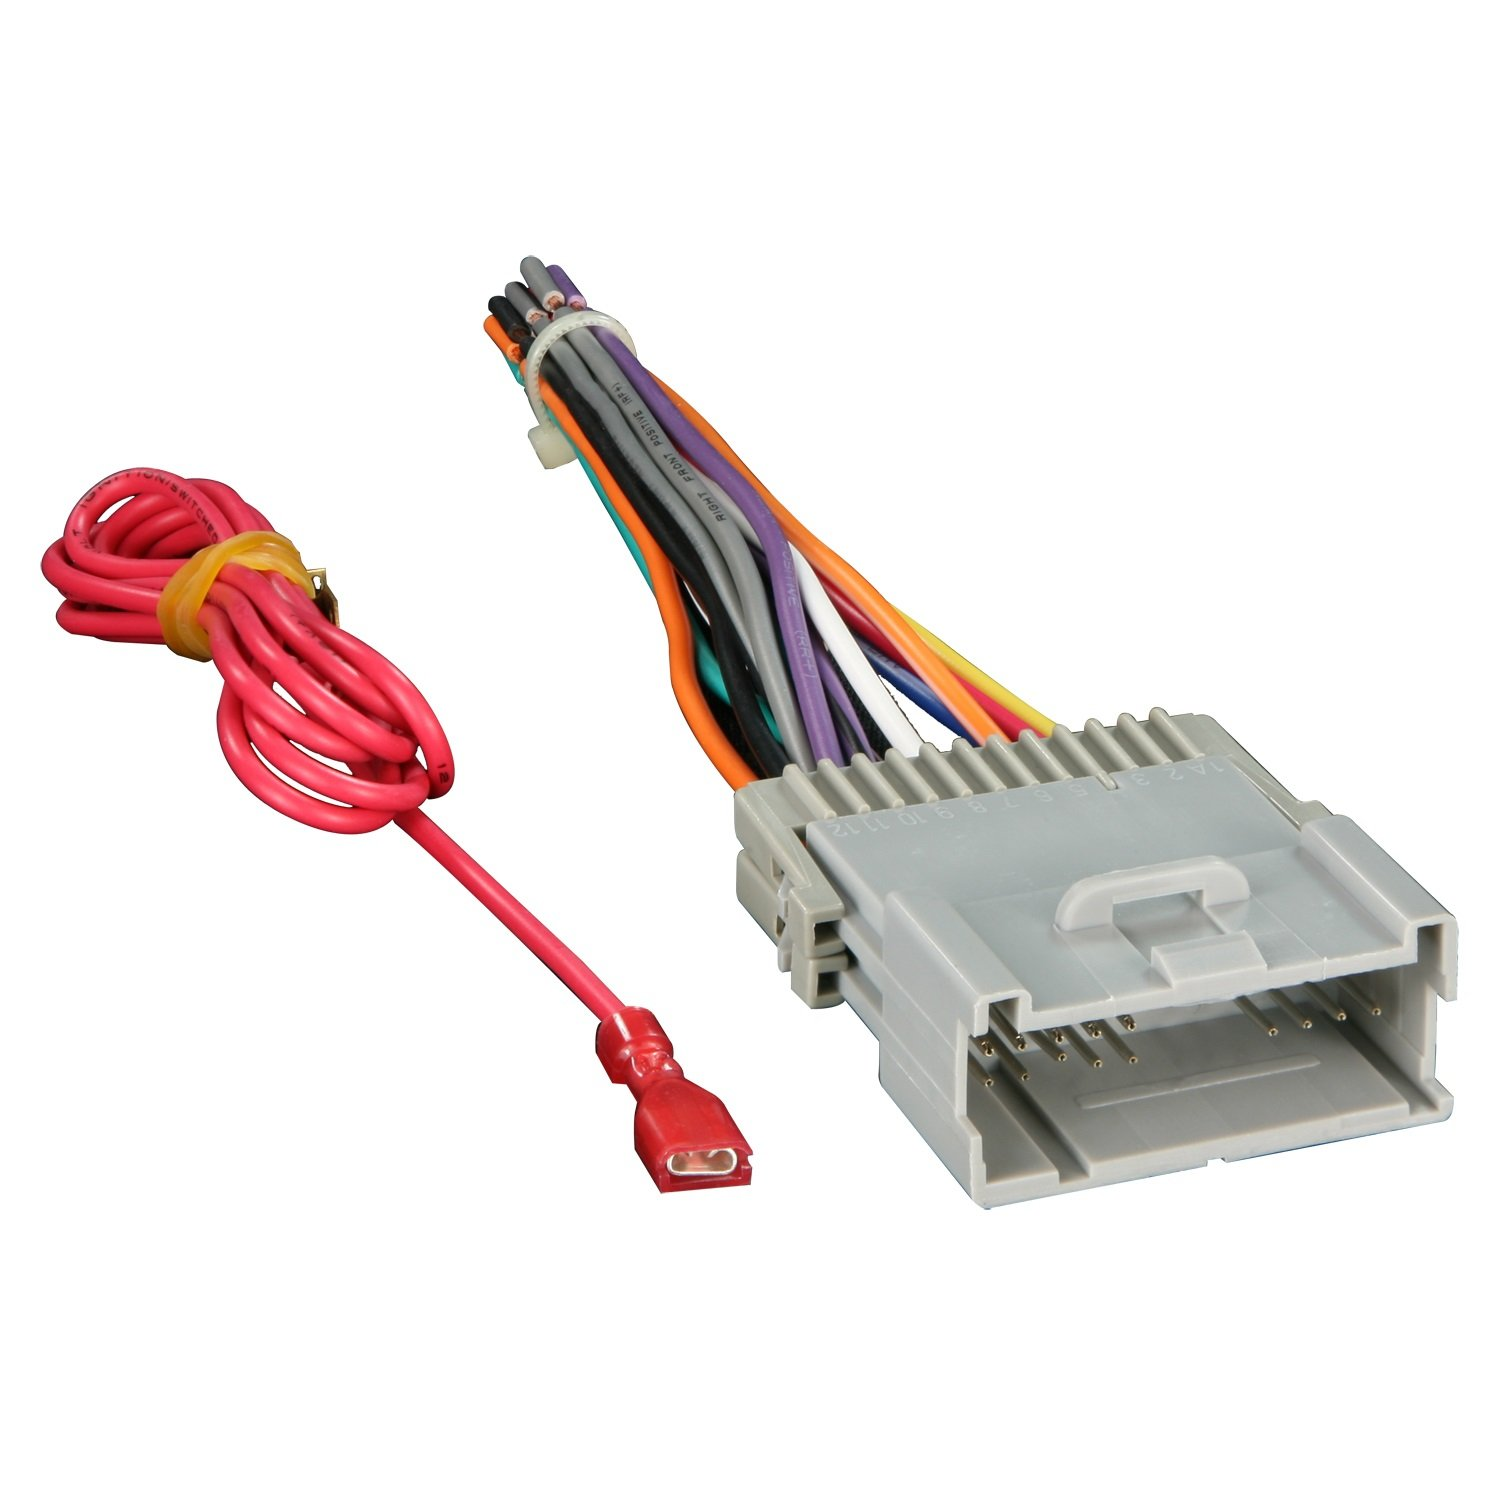 61eewxp9orL._SL1500_ amazon com metra 70 2003 radio wiring harness for gm 98 08 how to install wire harness car stereo at creativeand.co